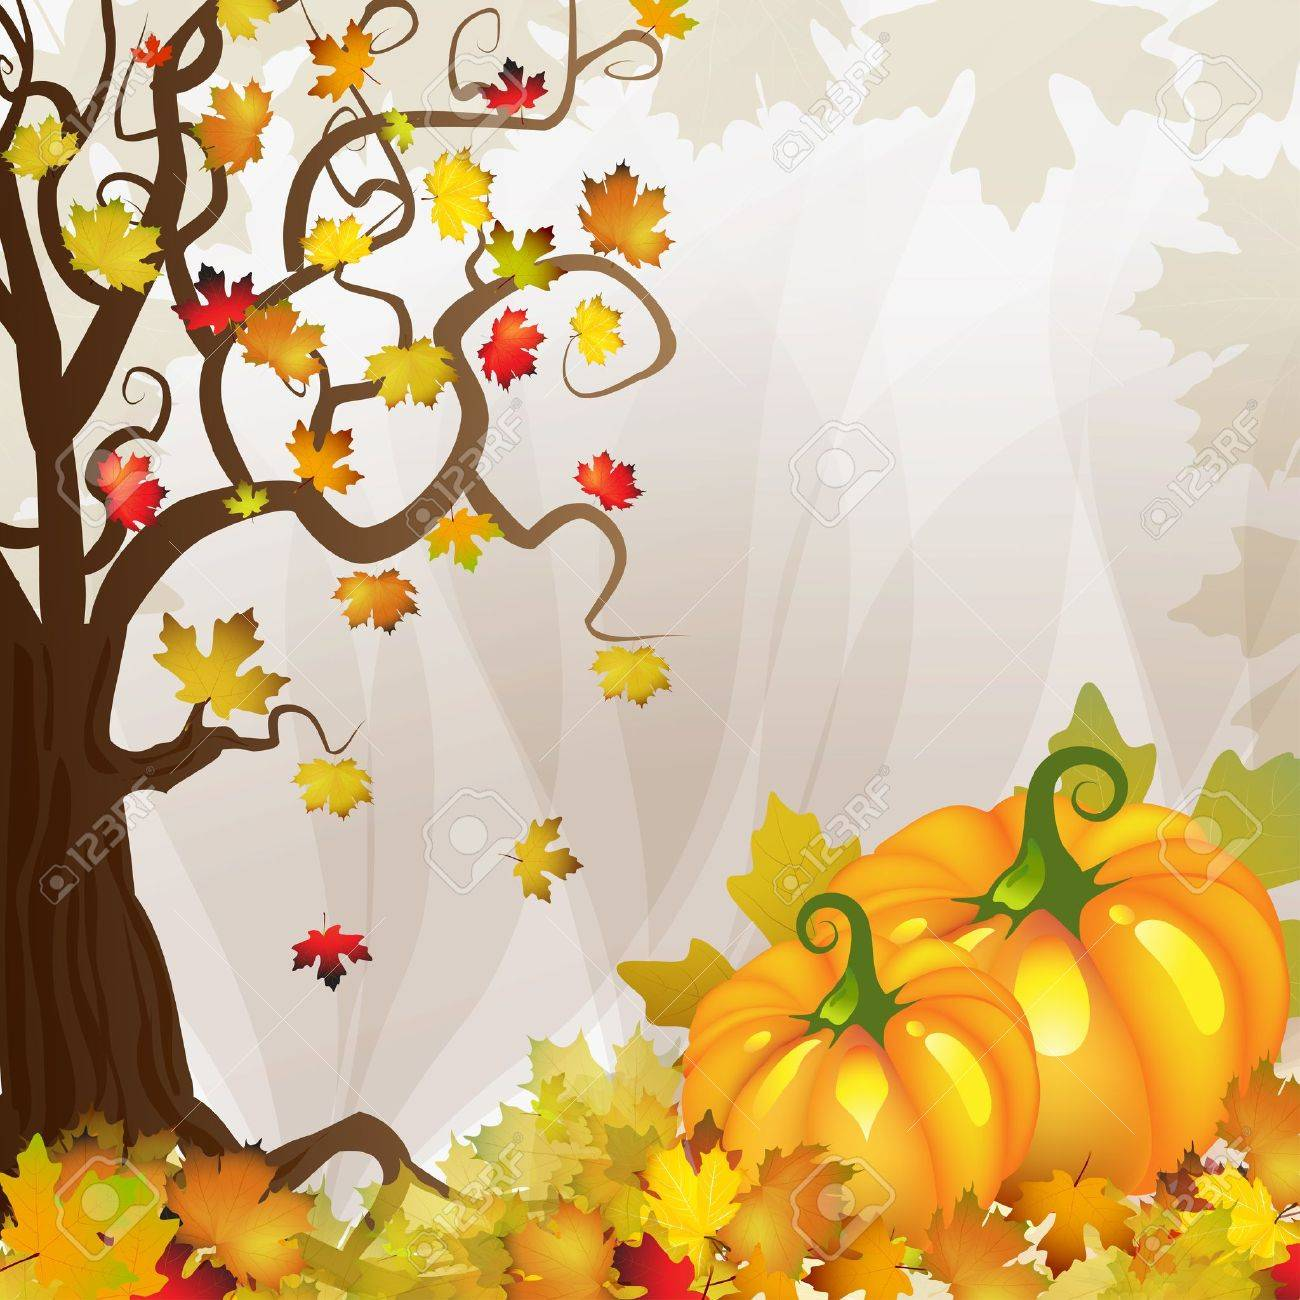 Pumpkin With Tree And Fall Leaves Royalty Free Cliparts Vectors